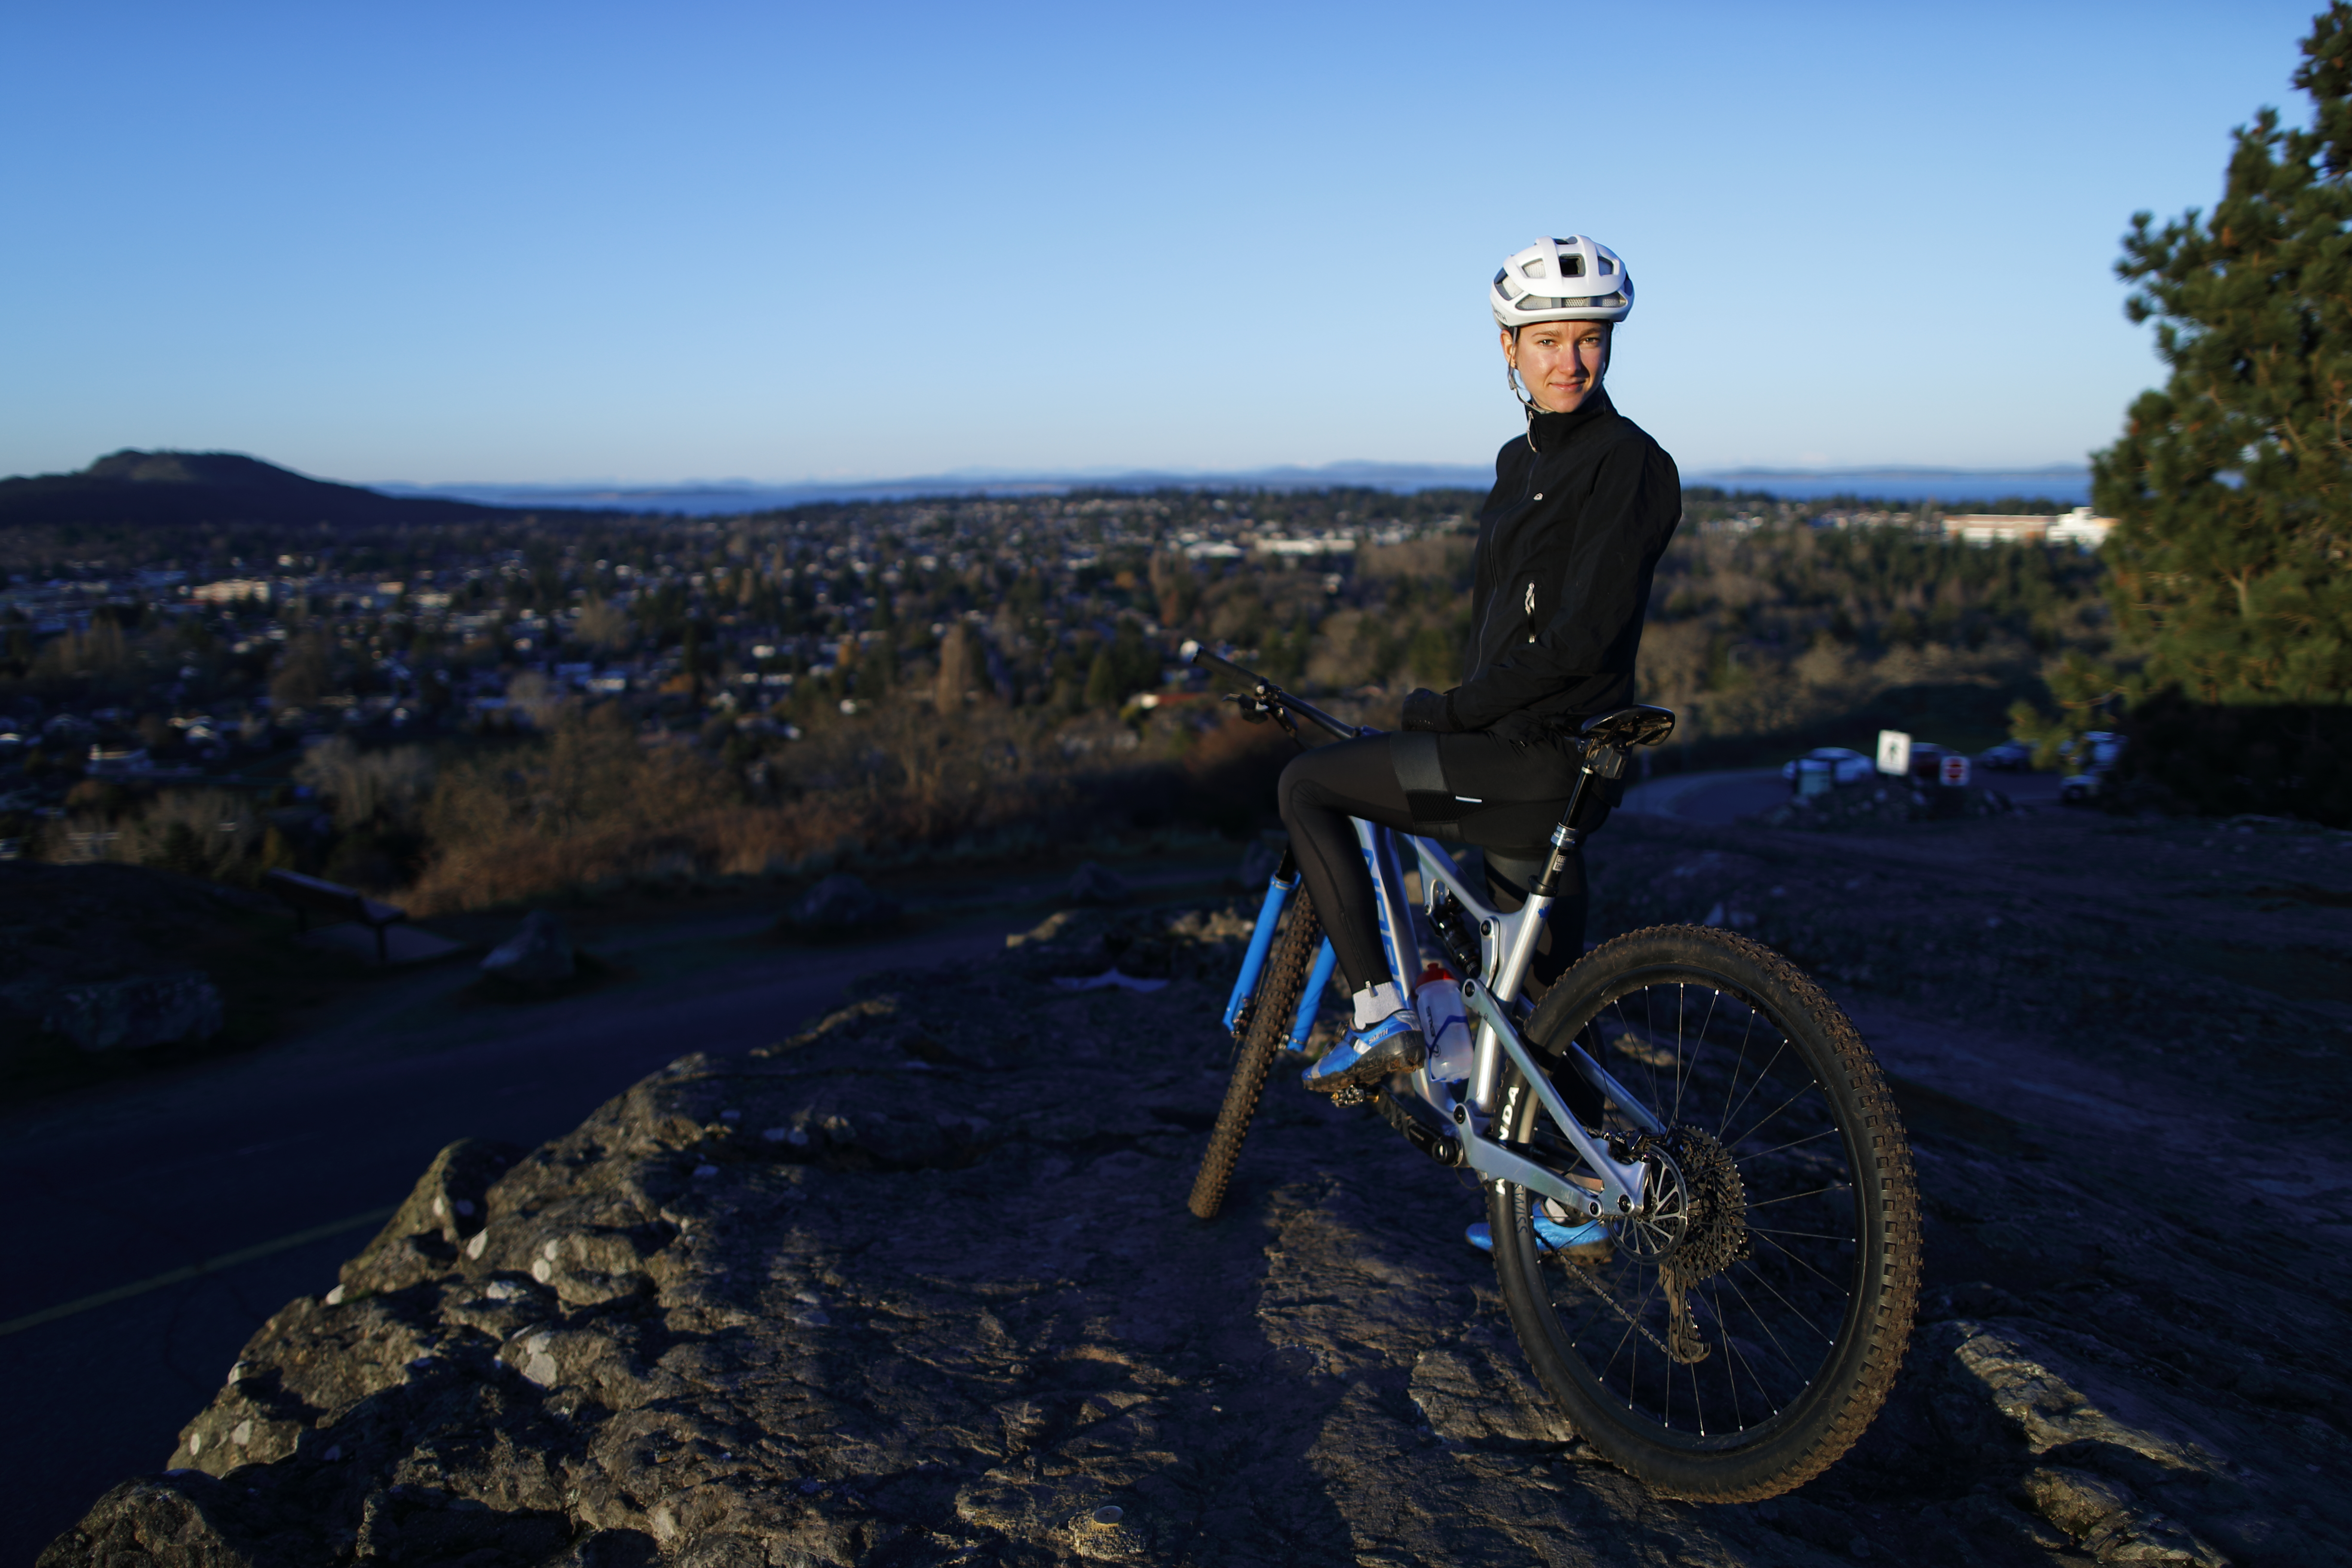 Haley Smith on her mountain bike looking over the city from a hill